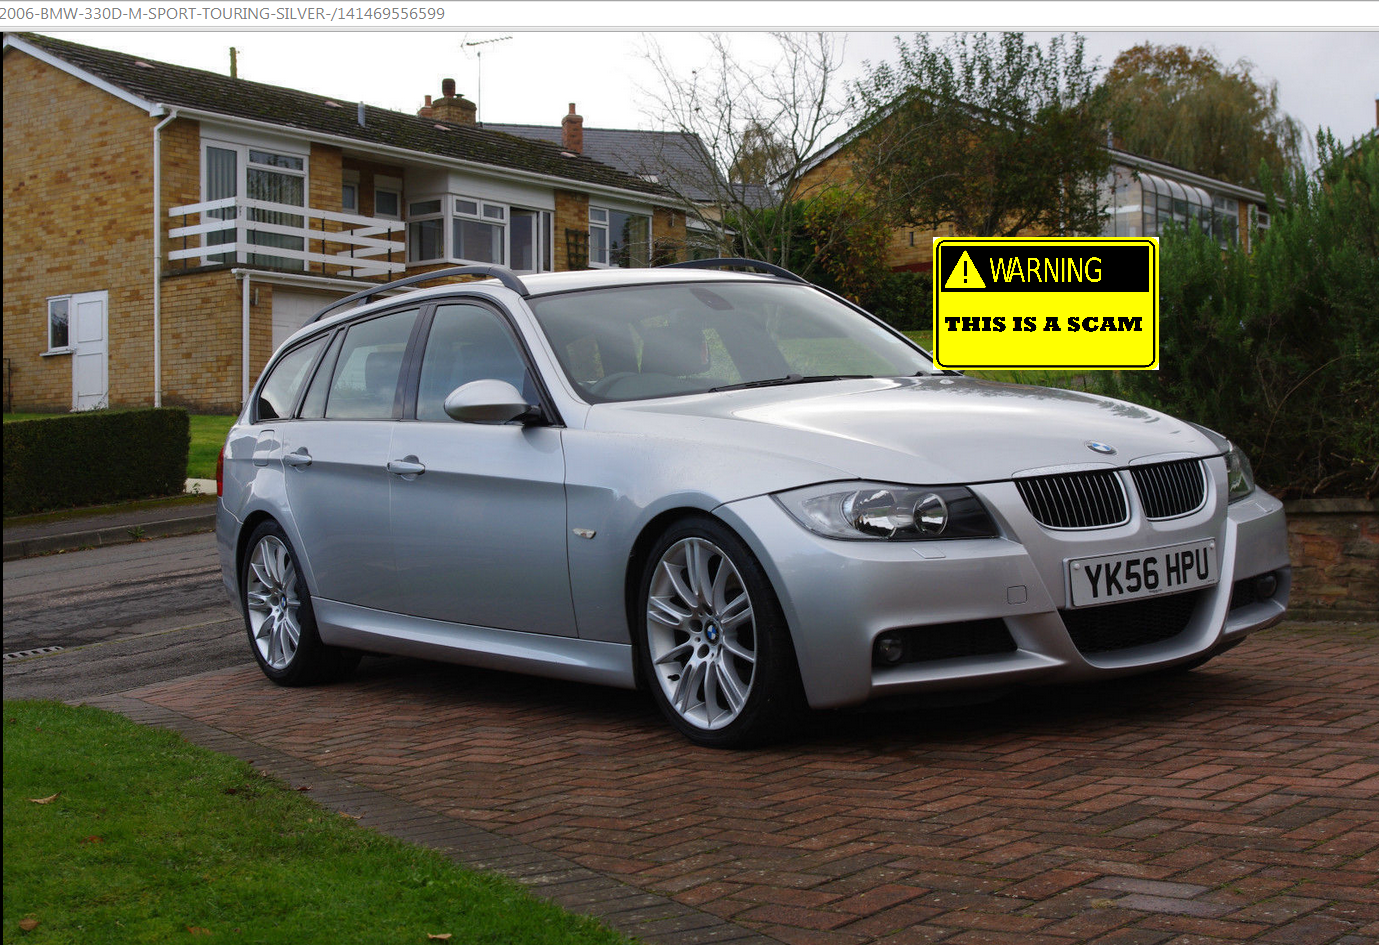 bmw 330d m sport ebay autos post. Black Bedroom Furniture Sets. Home Design Ideas